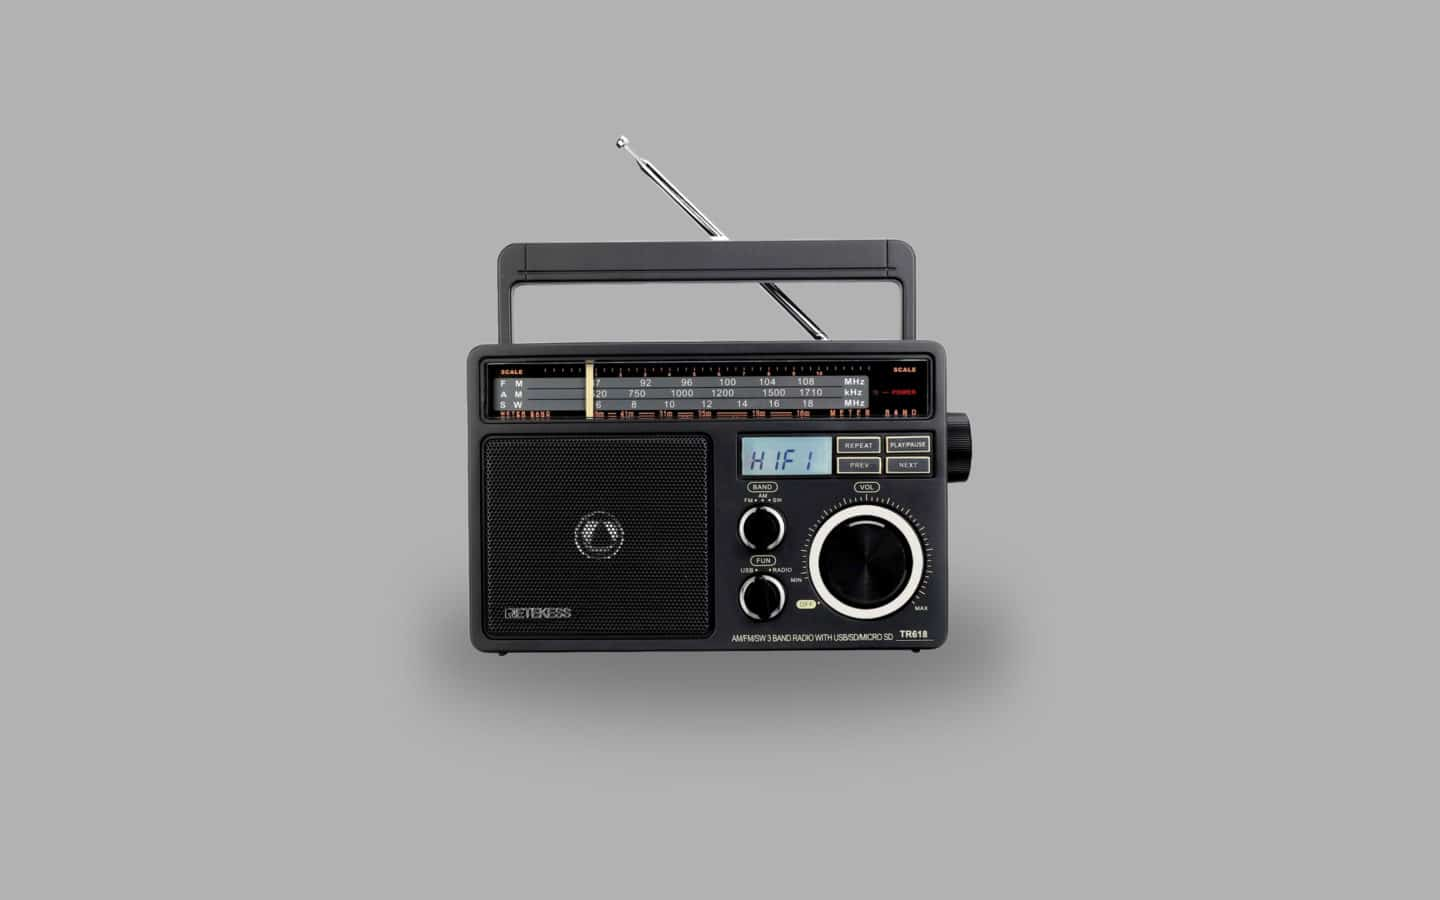 Best Shortwave Radio 11